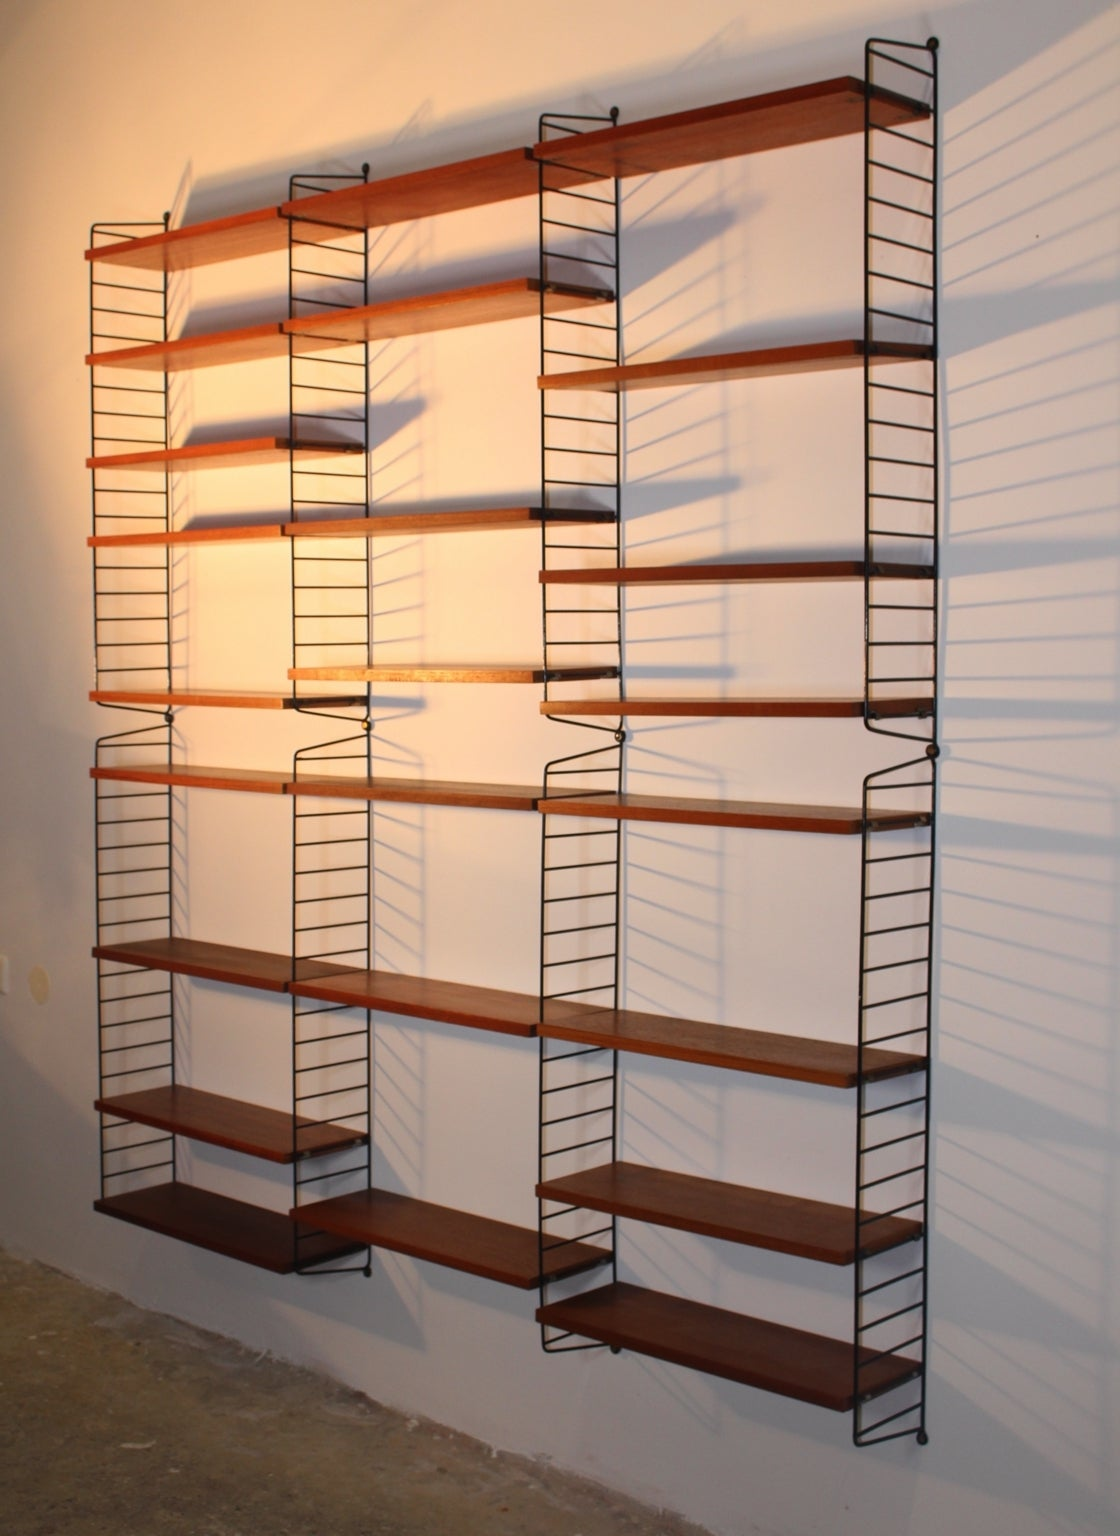 Original String Shelf Ladder Shelf By Nisse Strinning